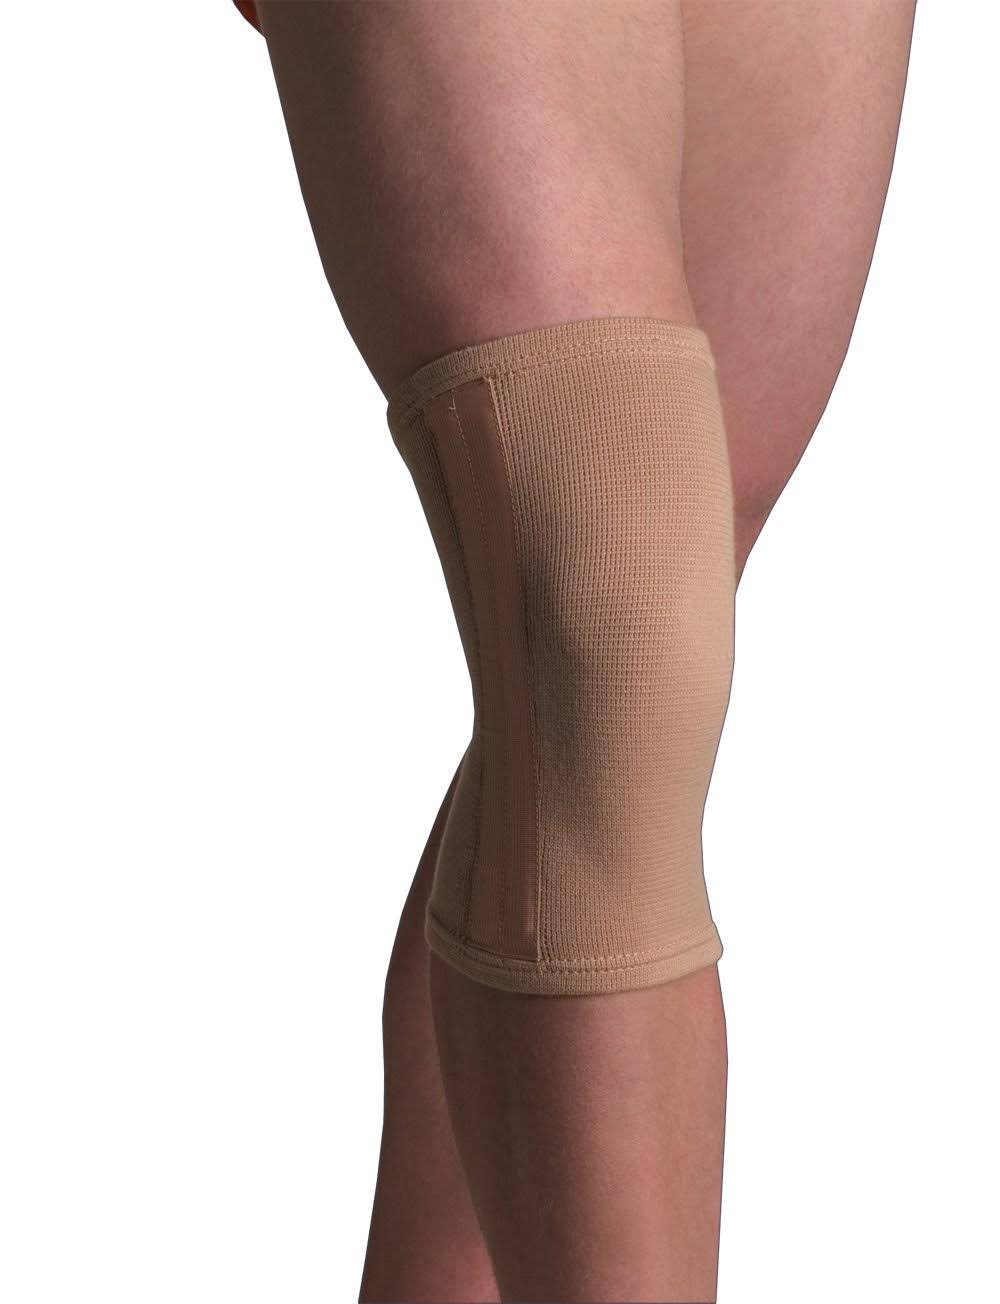 Thermoskin Elastic Knee Stabiliser Support